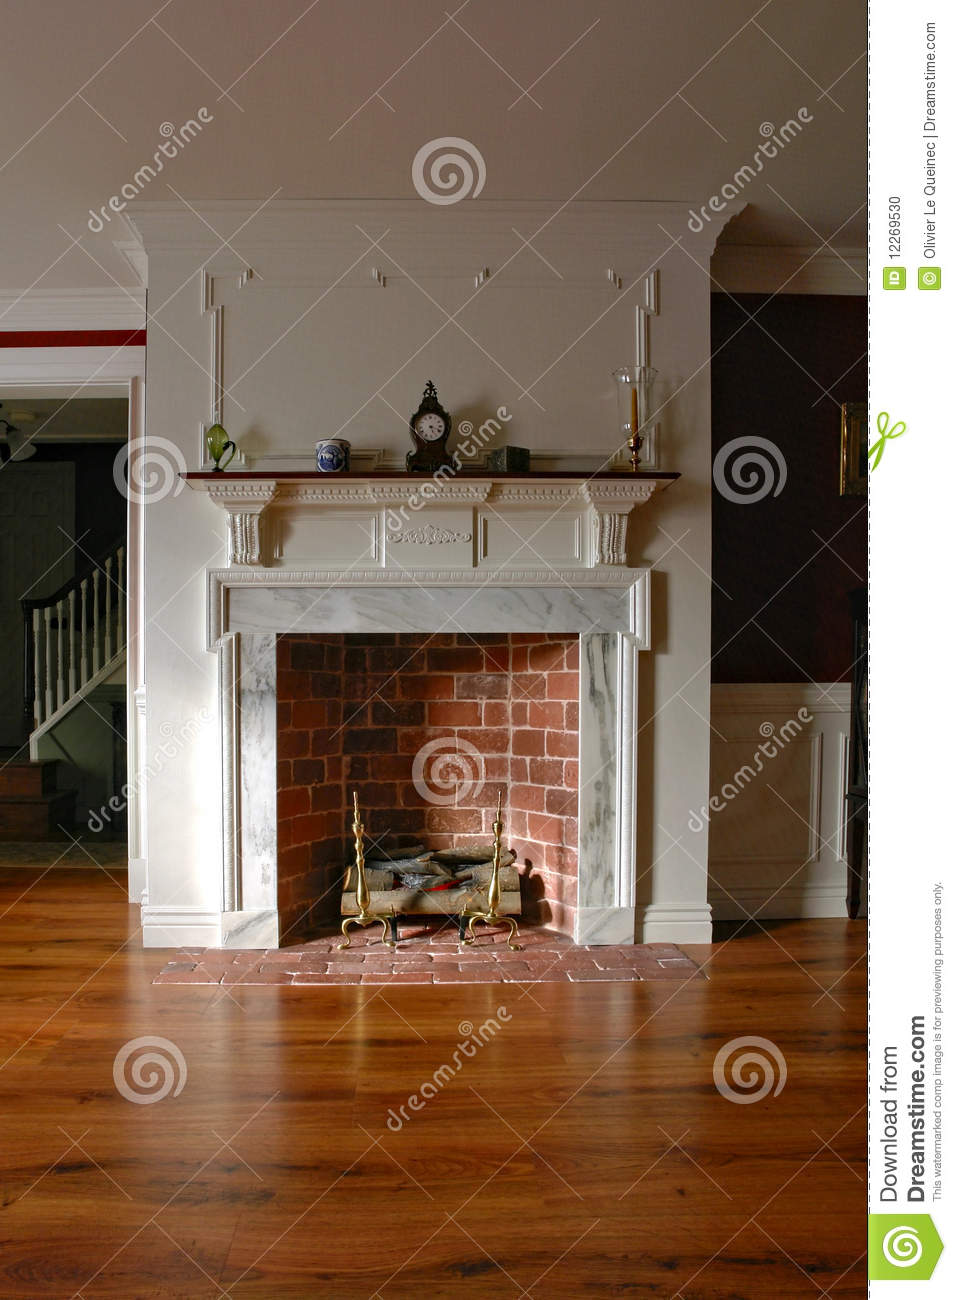 Fireplace In Antique Colonial Style Home Interior Stock Photo ...